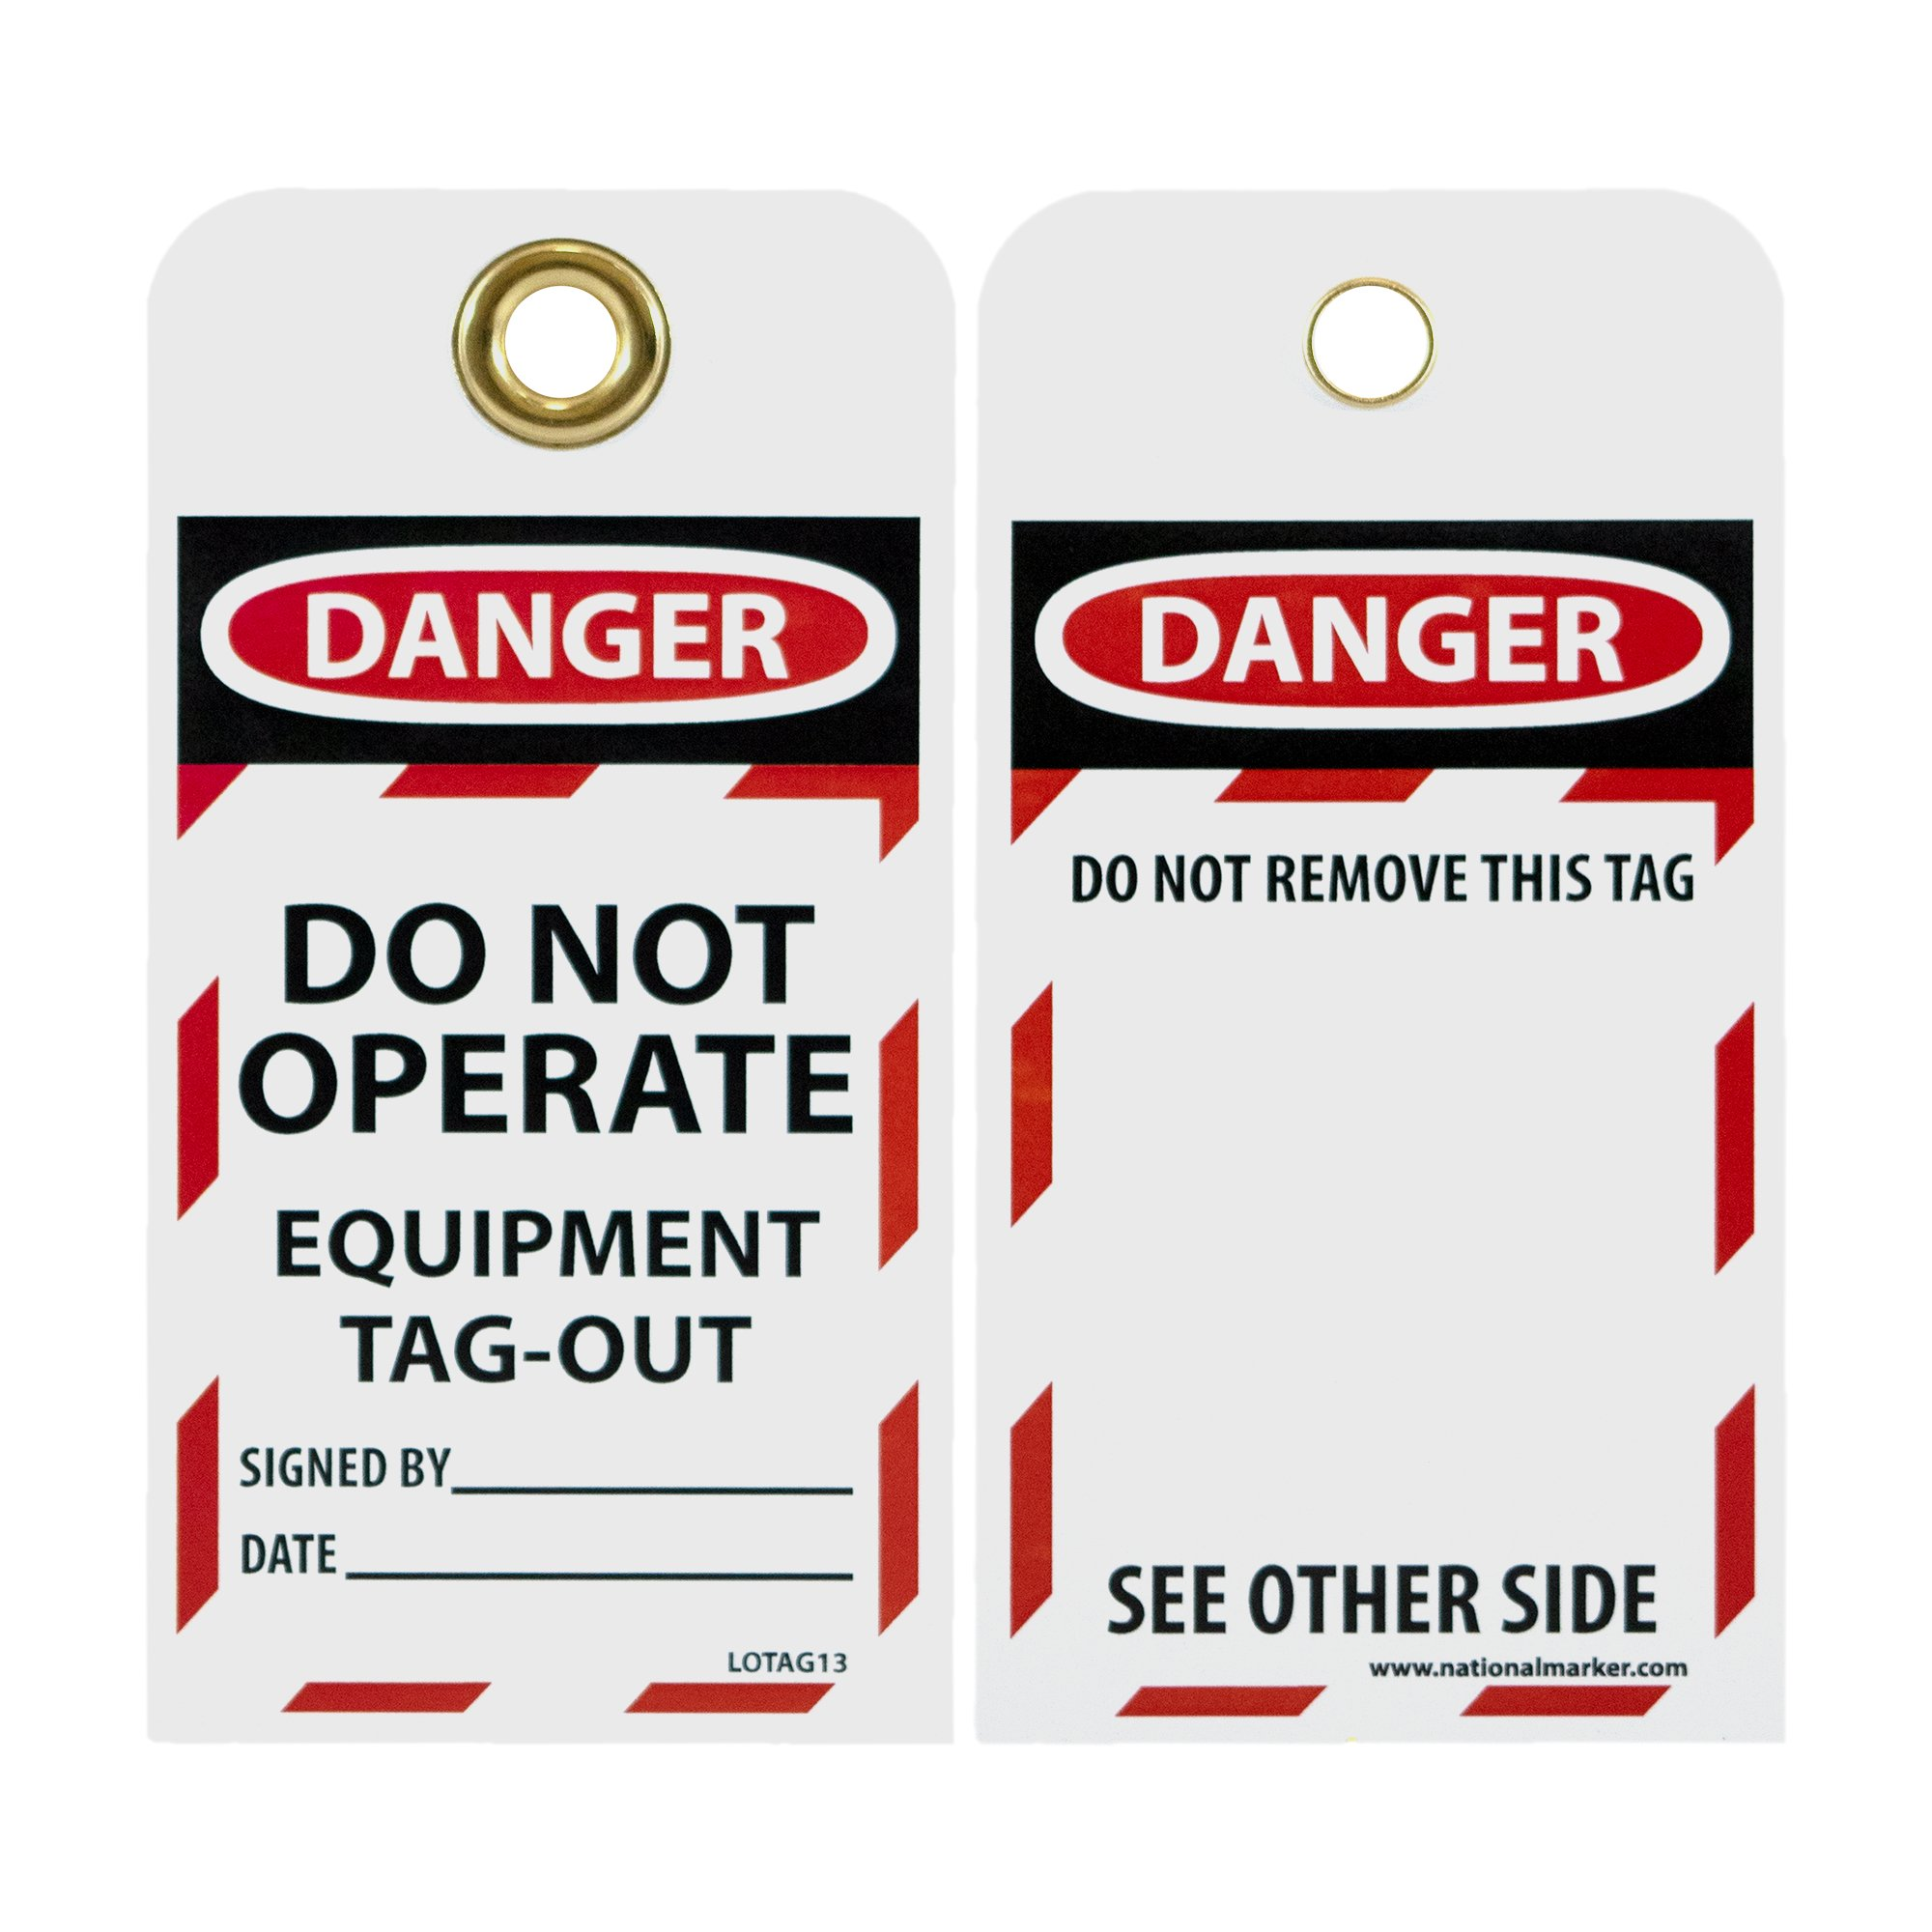 NMC LOTAG13 Lockout Tag,''DANGER - DO NOT OPERATE - EQUIPMENT TAG-OUT,'' 6'' Height x 3'' Width, Unrippable Vinyl, Red/Black on White (Pack of 10) by NMC